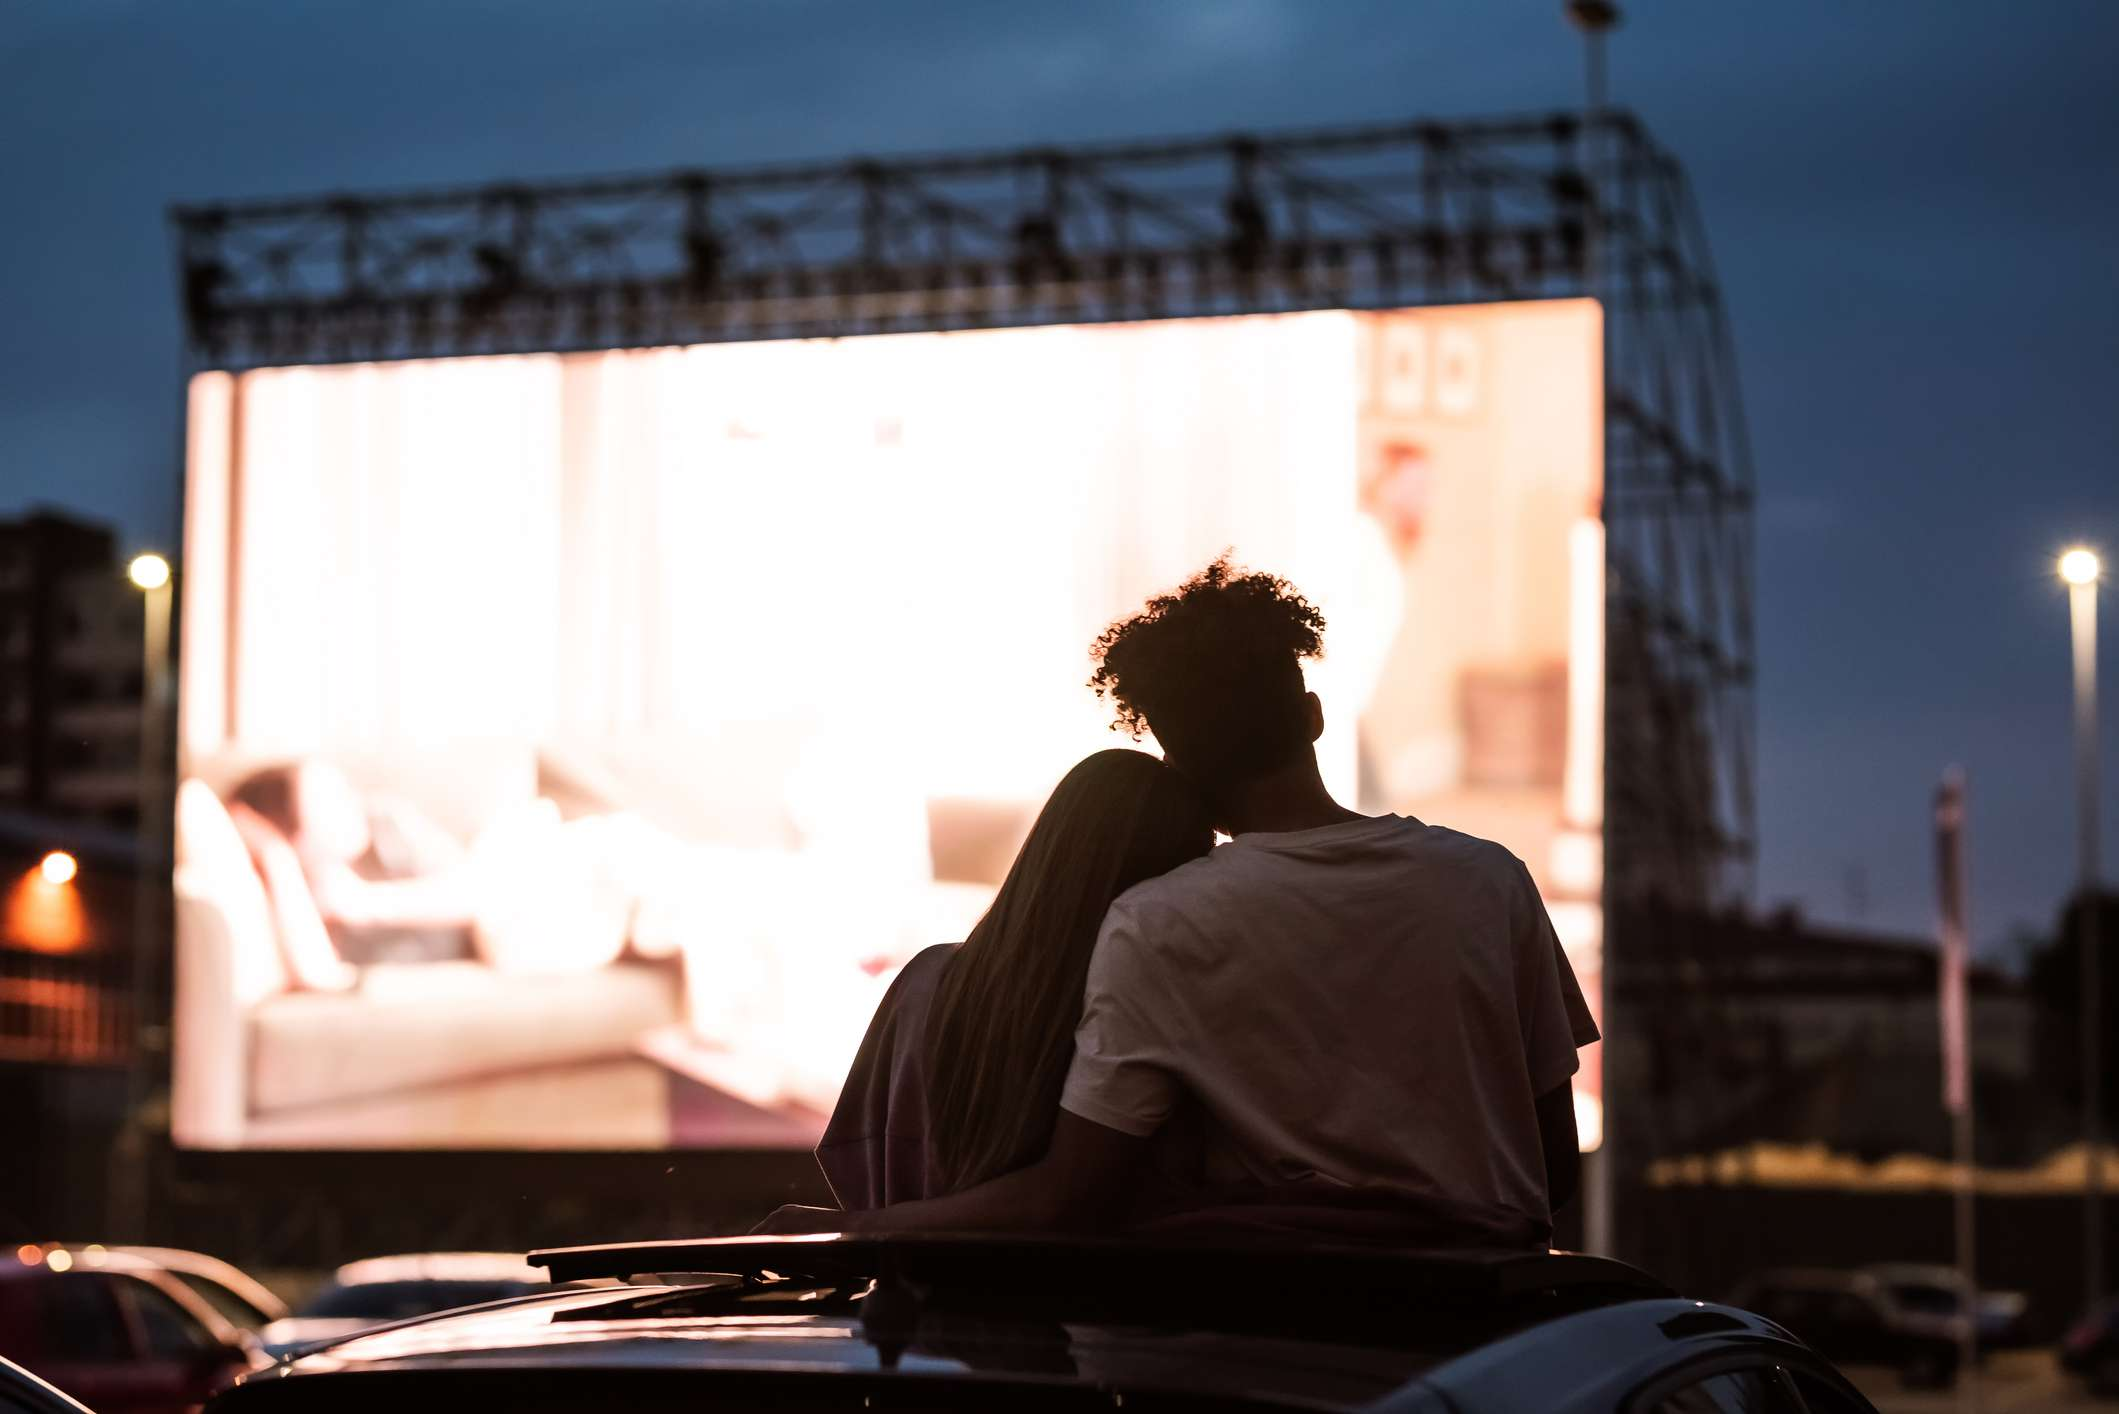 Silhouetted view of attractive young couple, boy and girl embracing at a drive in movie